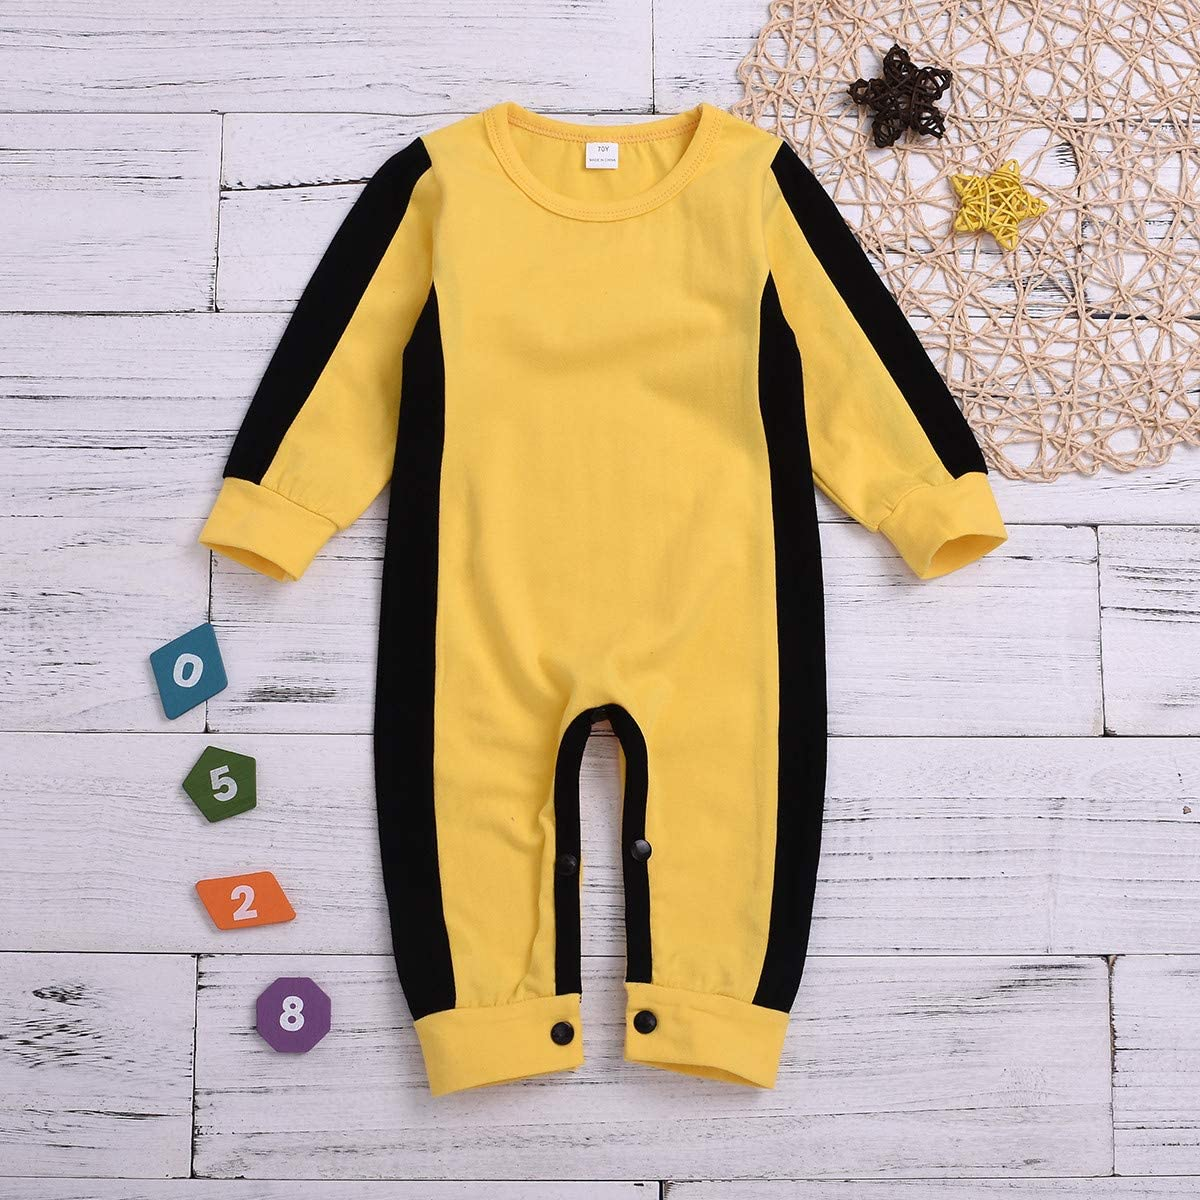 LQSZ Boys The Ink Machine Party Jumpsuit Classic with Headwear Black and Yellow 5-12Y